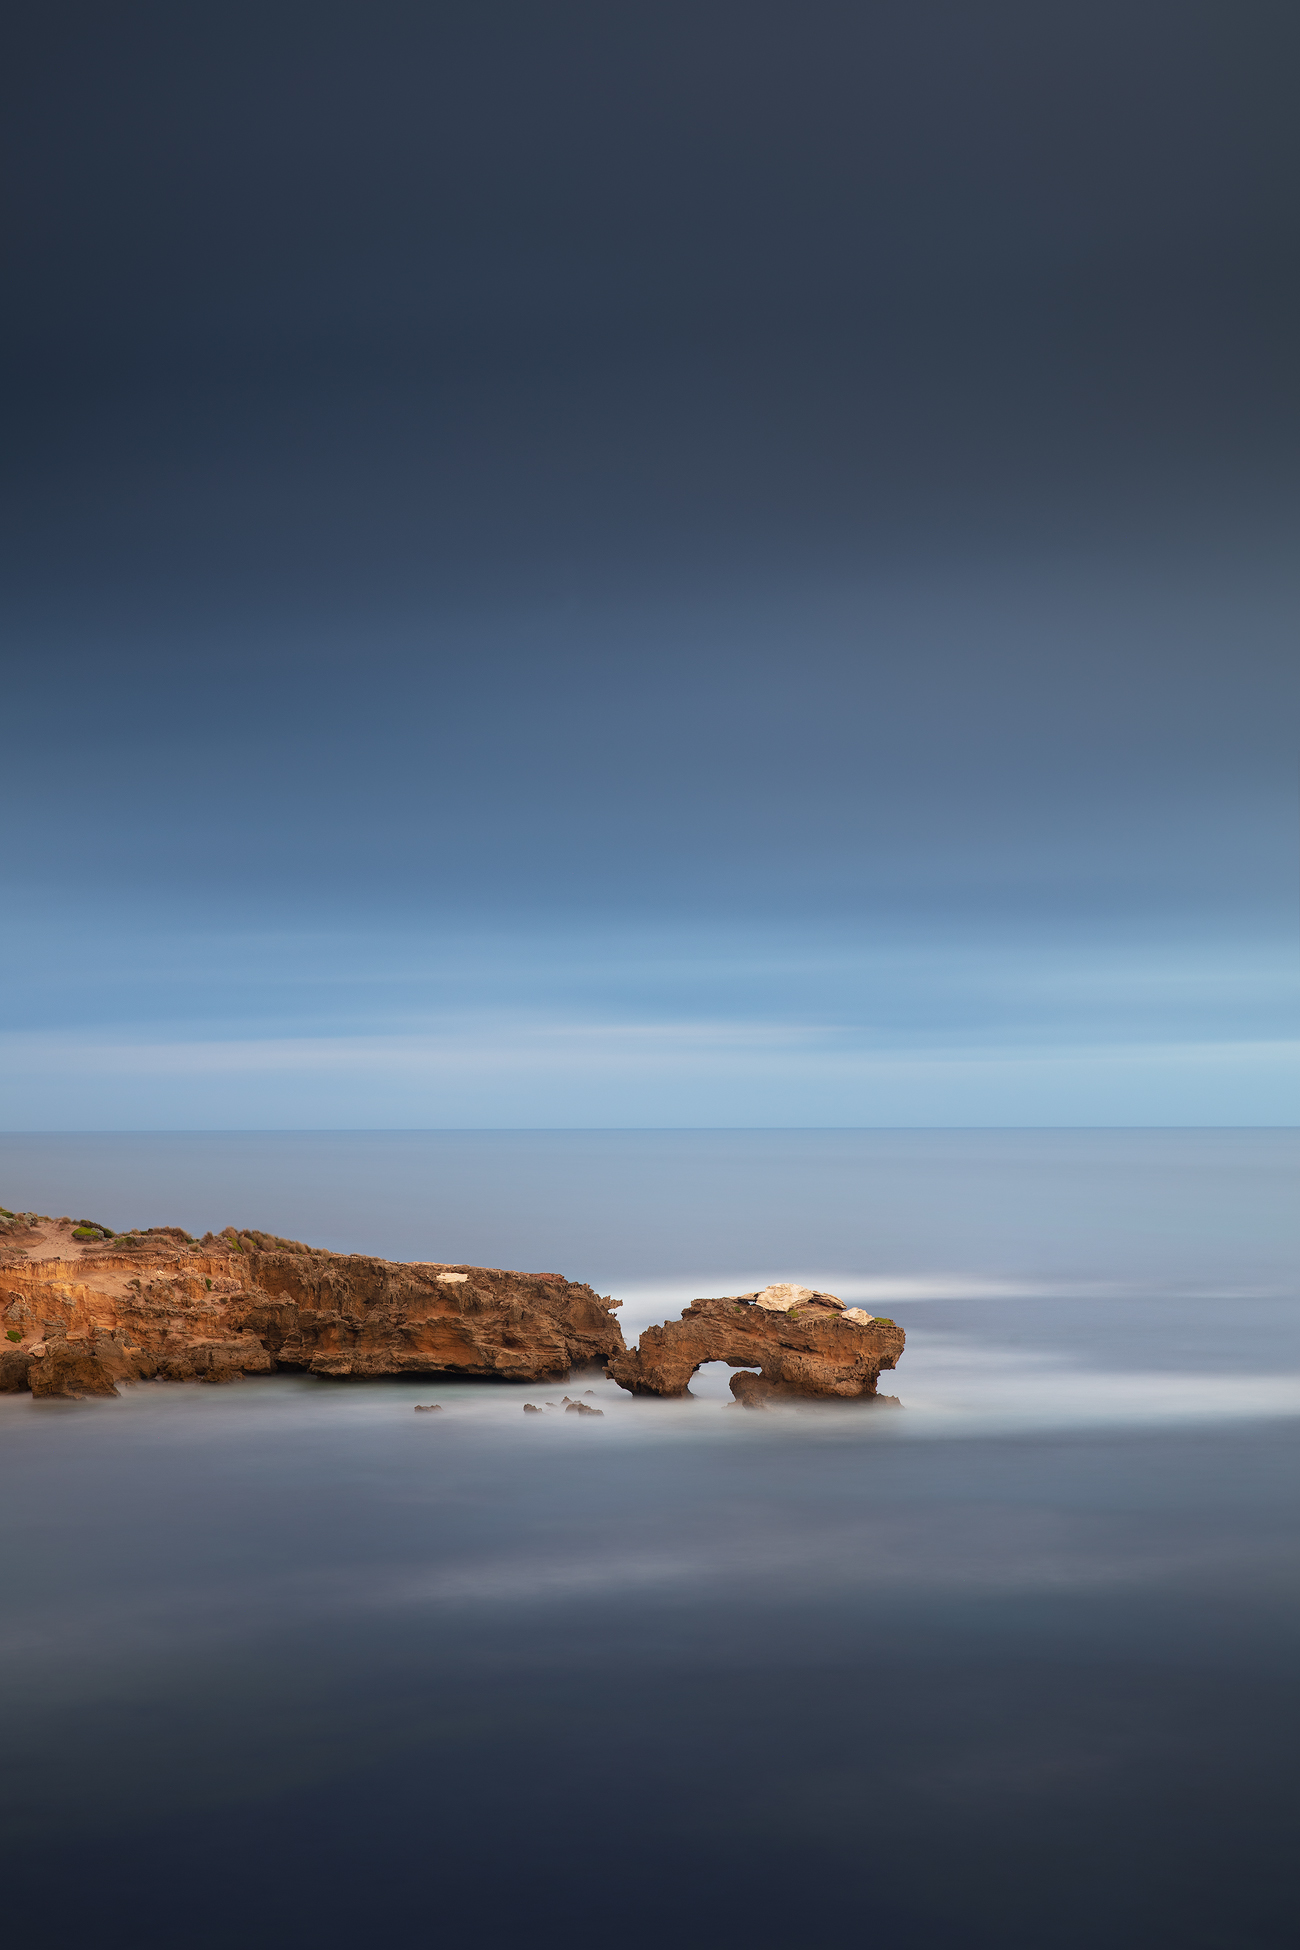 Minimal Long Exposure Landscape Photography | We Are Raw Photography - Sunset Mornington Peninsula, Bridgewater Bay